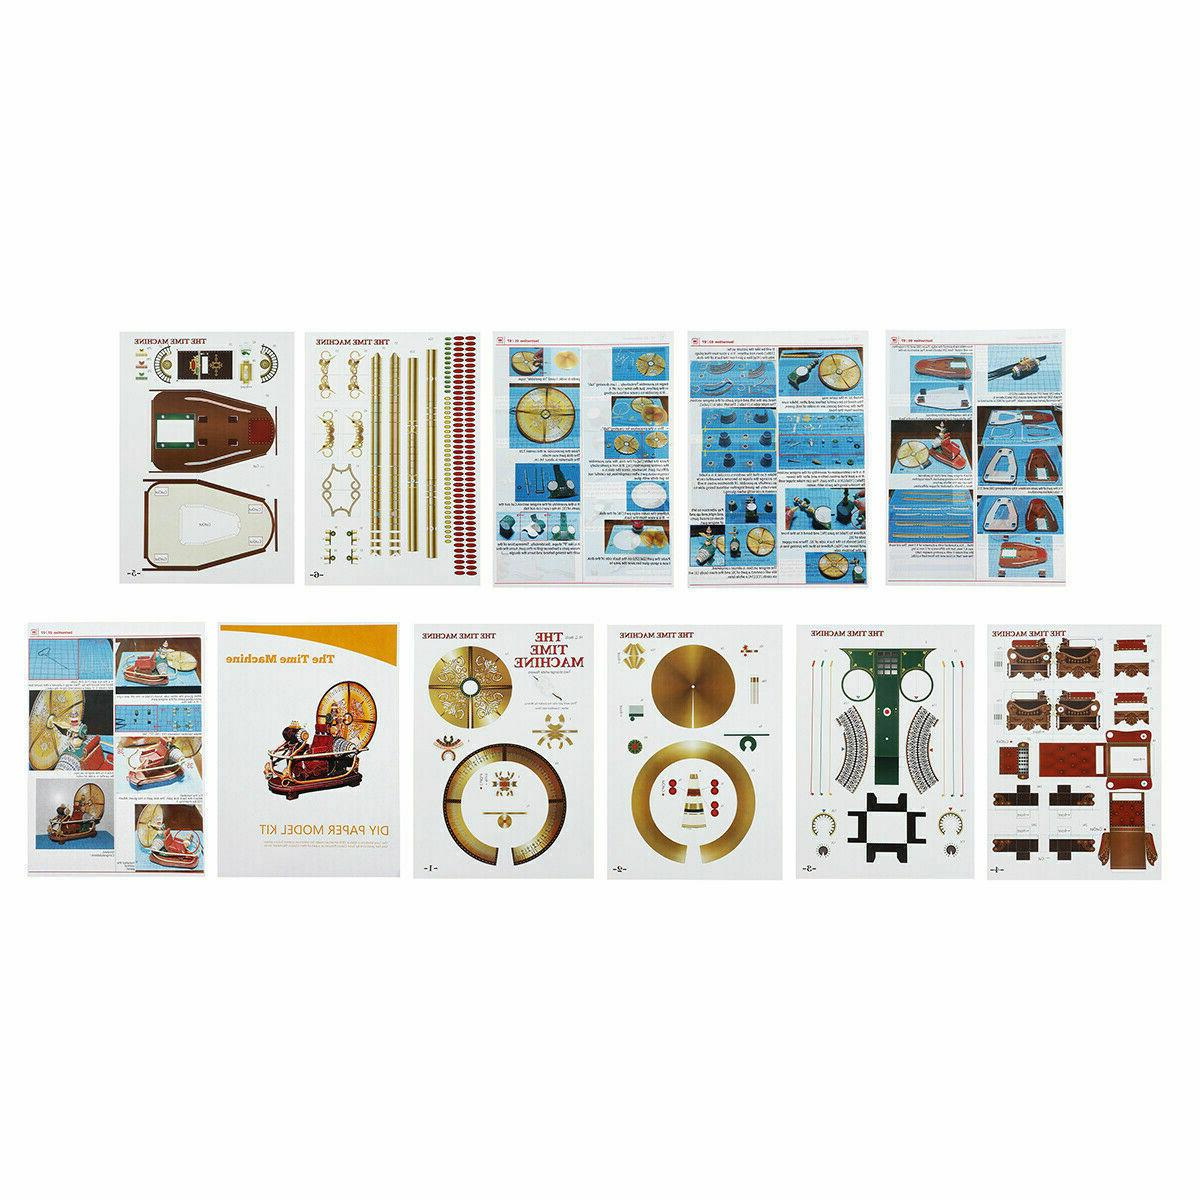 DIY Model Kit The Time 3D Toy Gift Hobby Manual